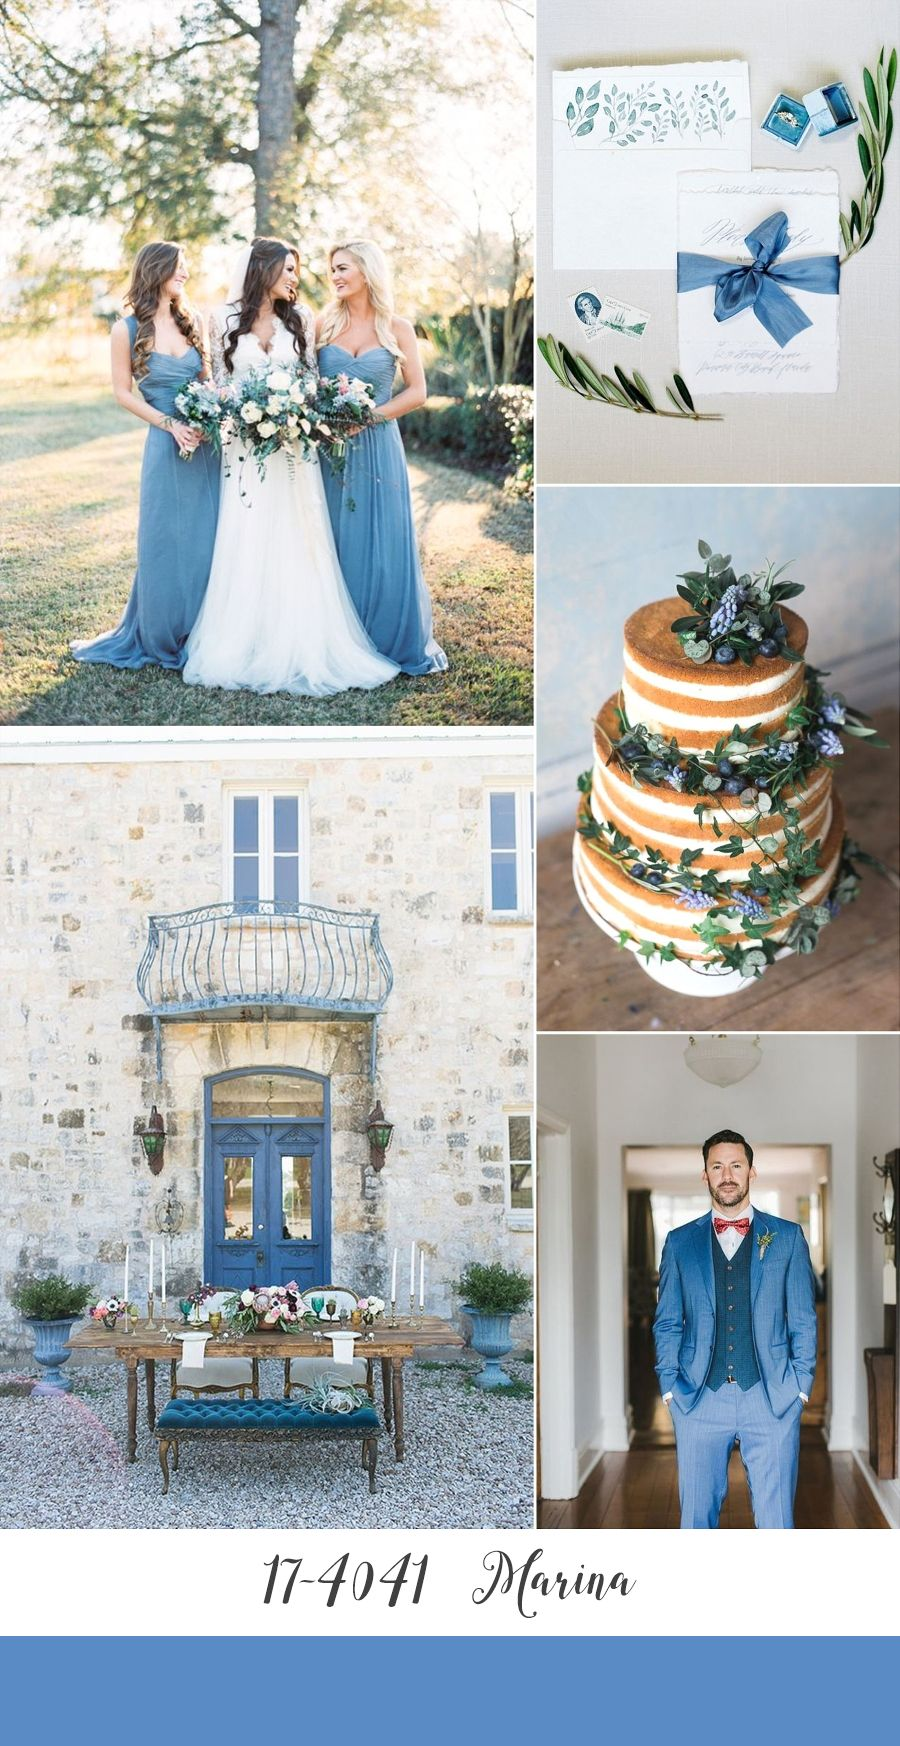 10 Beautiful Wedding Colors for Fall from Pantone - Part II ...